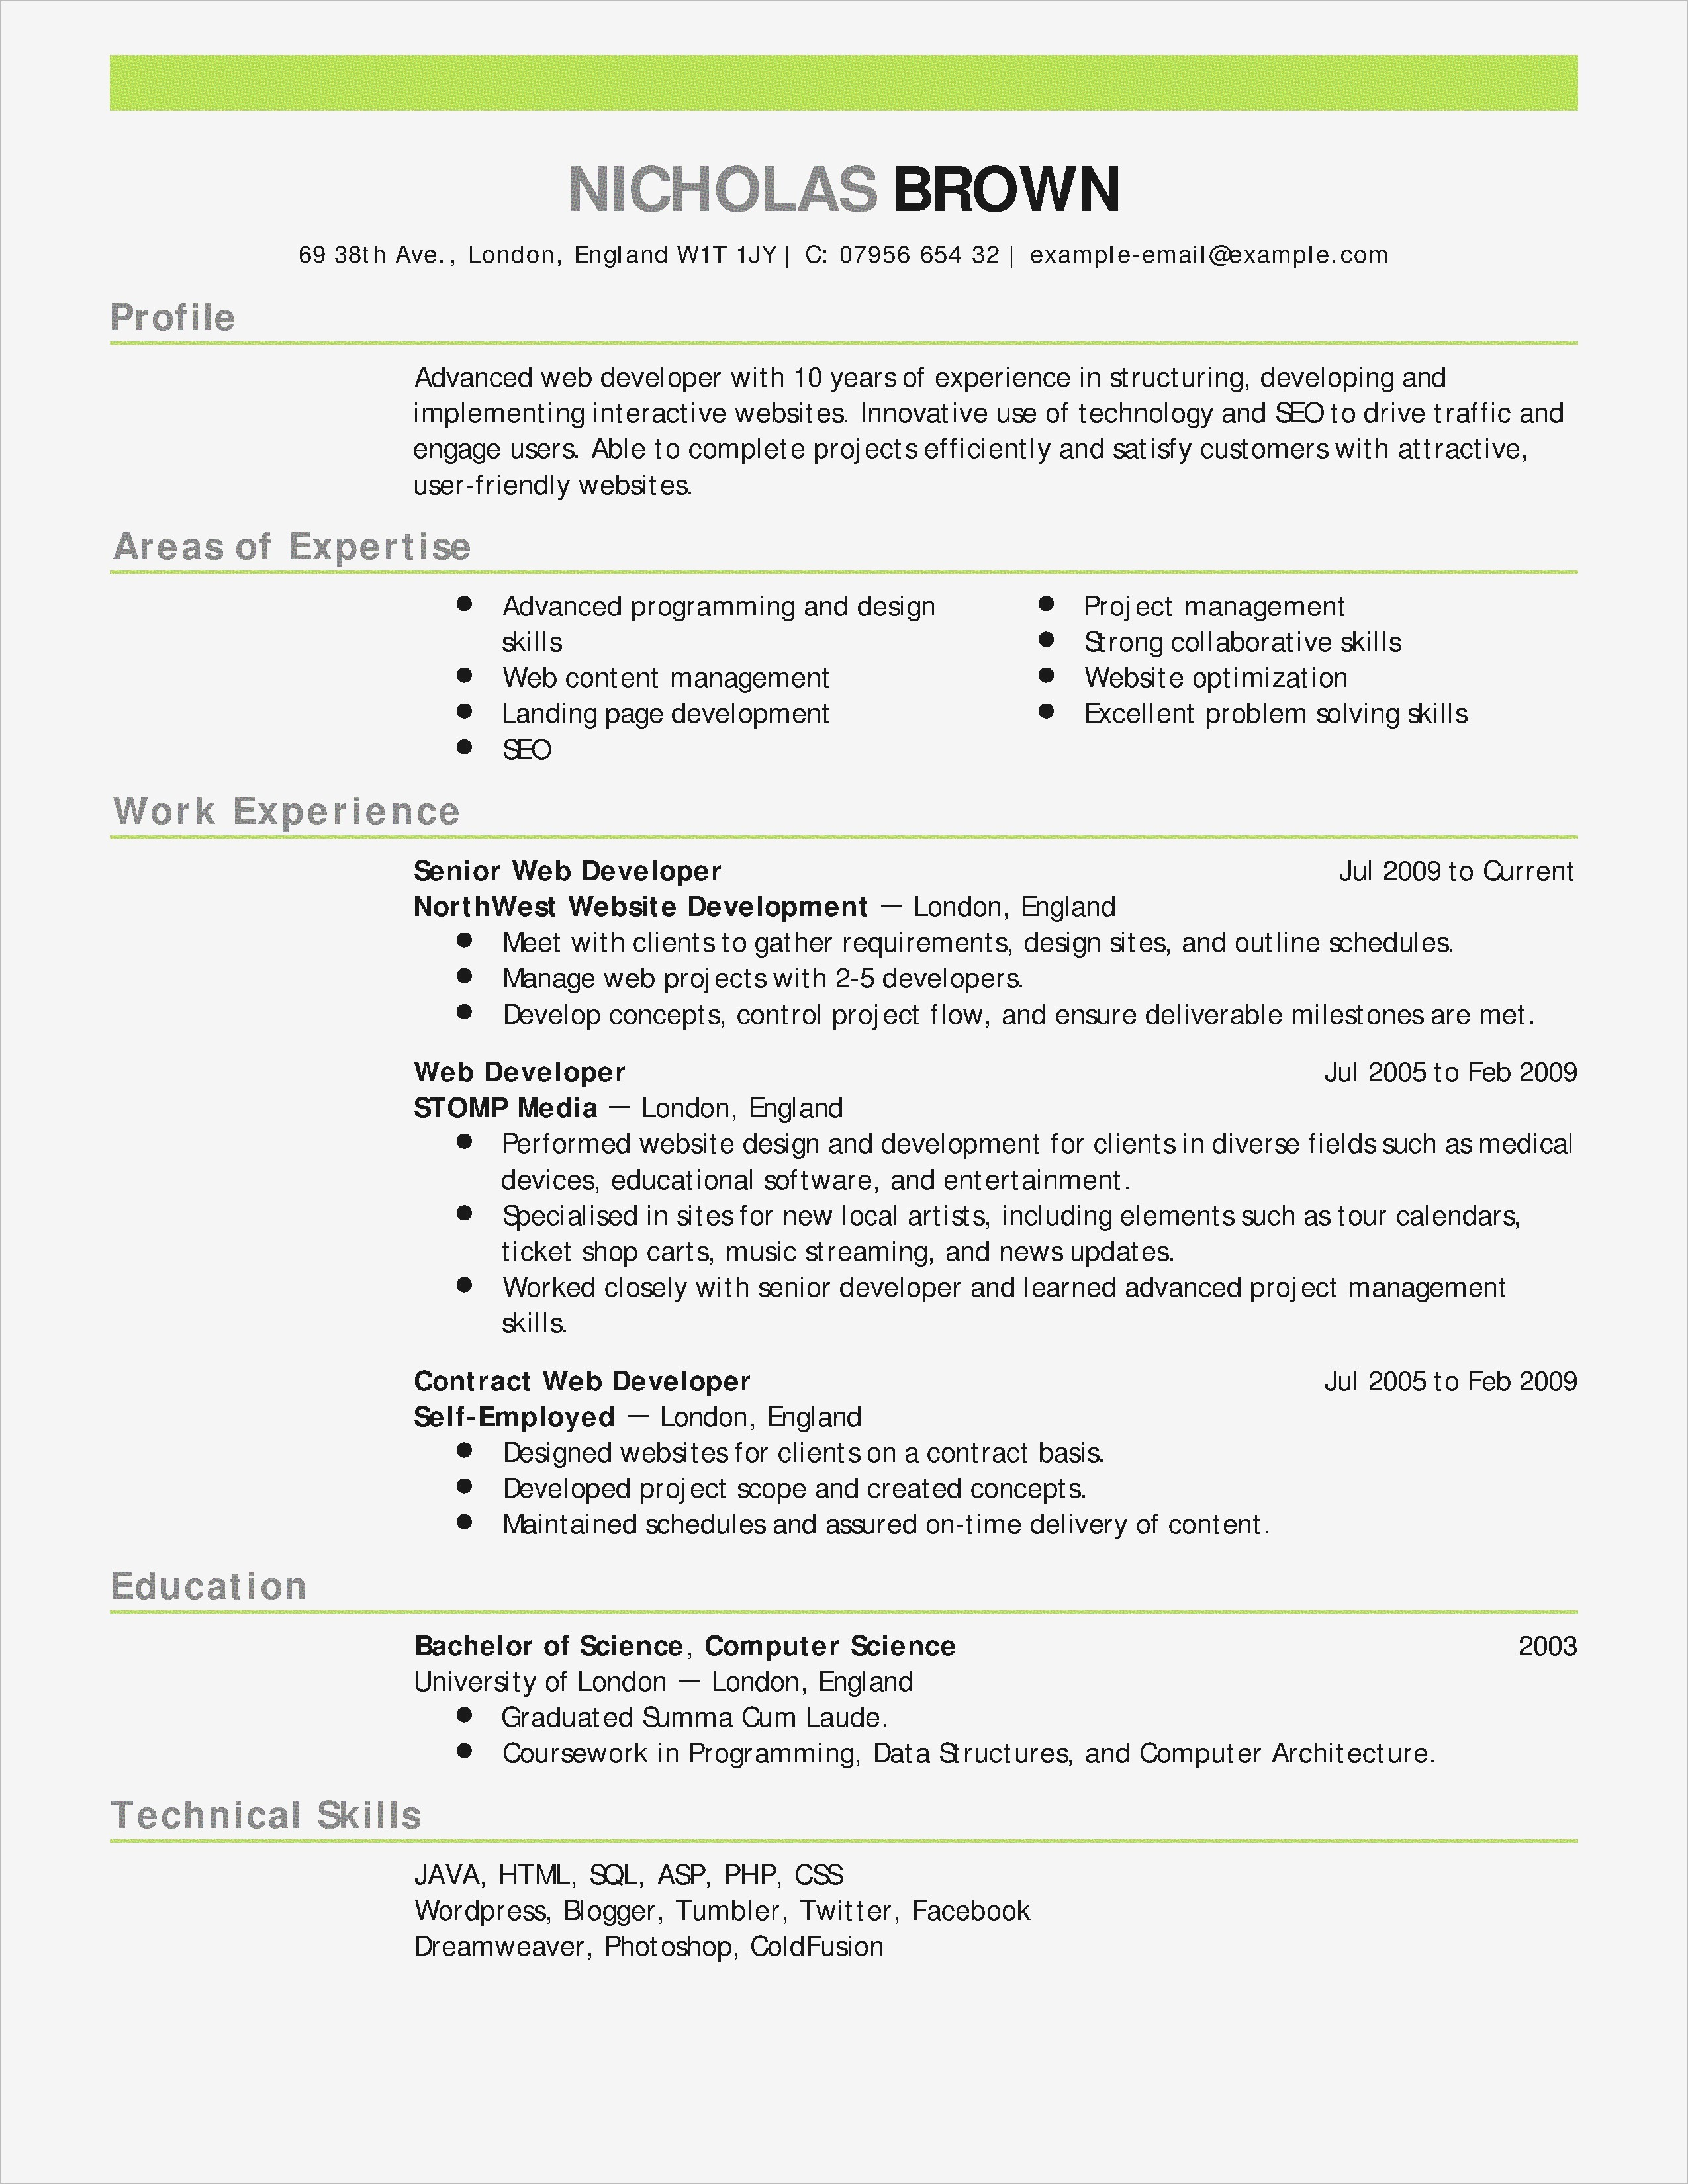 Letter Of Credit Template - Lovely Technical Design Document Template